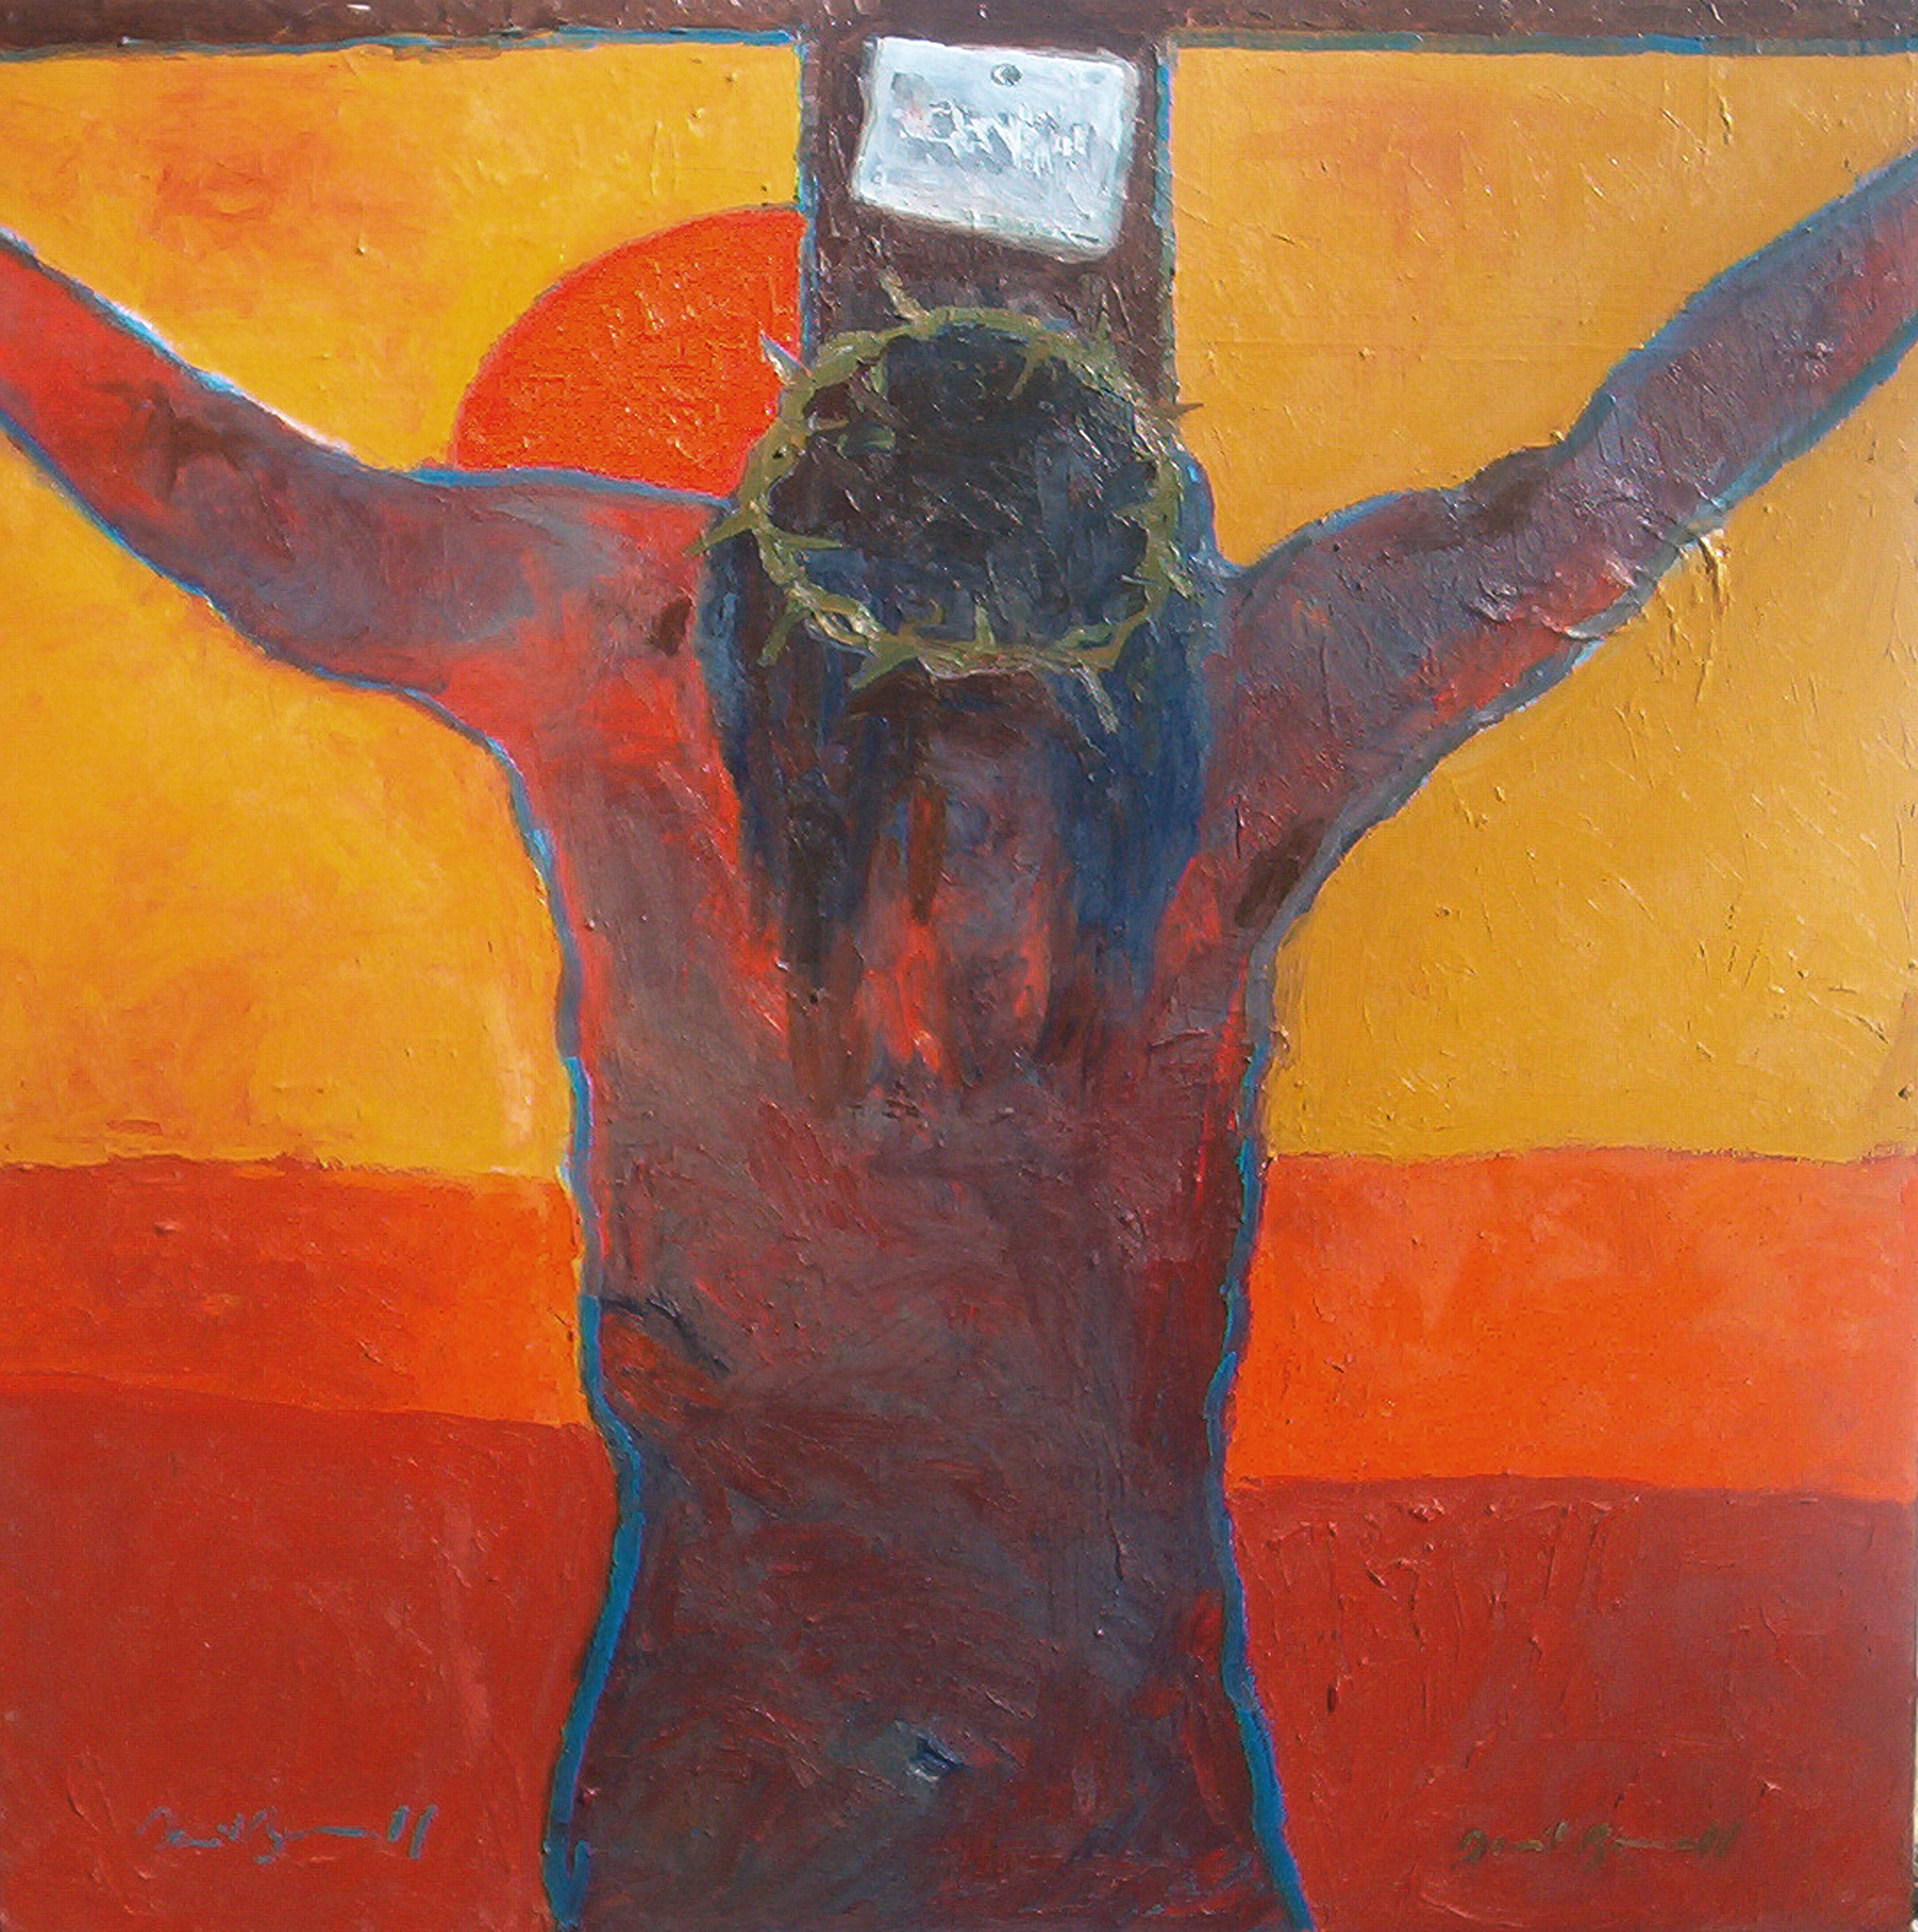 Crucifixion, oil on canvas, 2005, 4x4', $5,000 SOLD